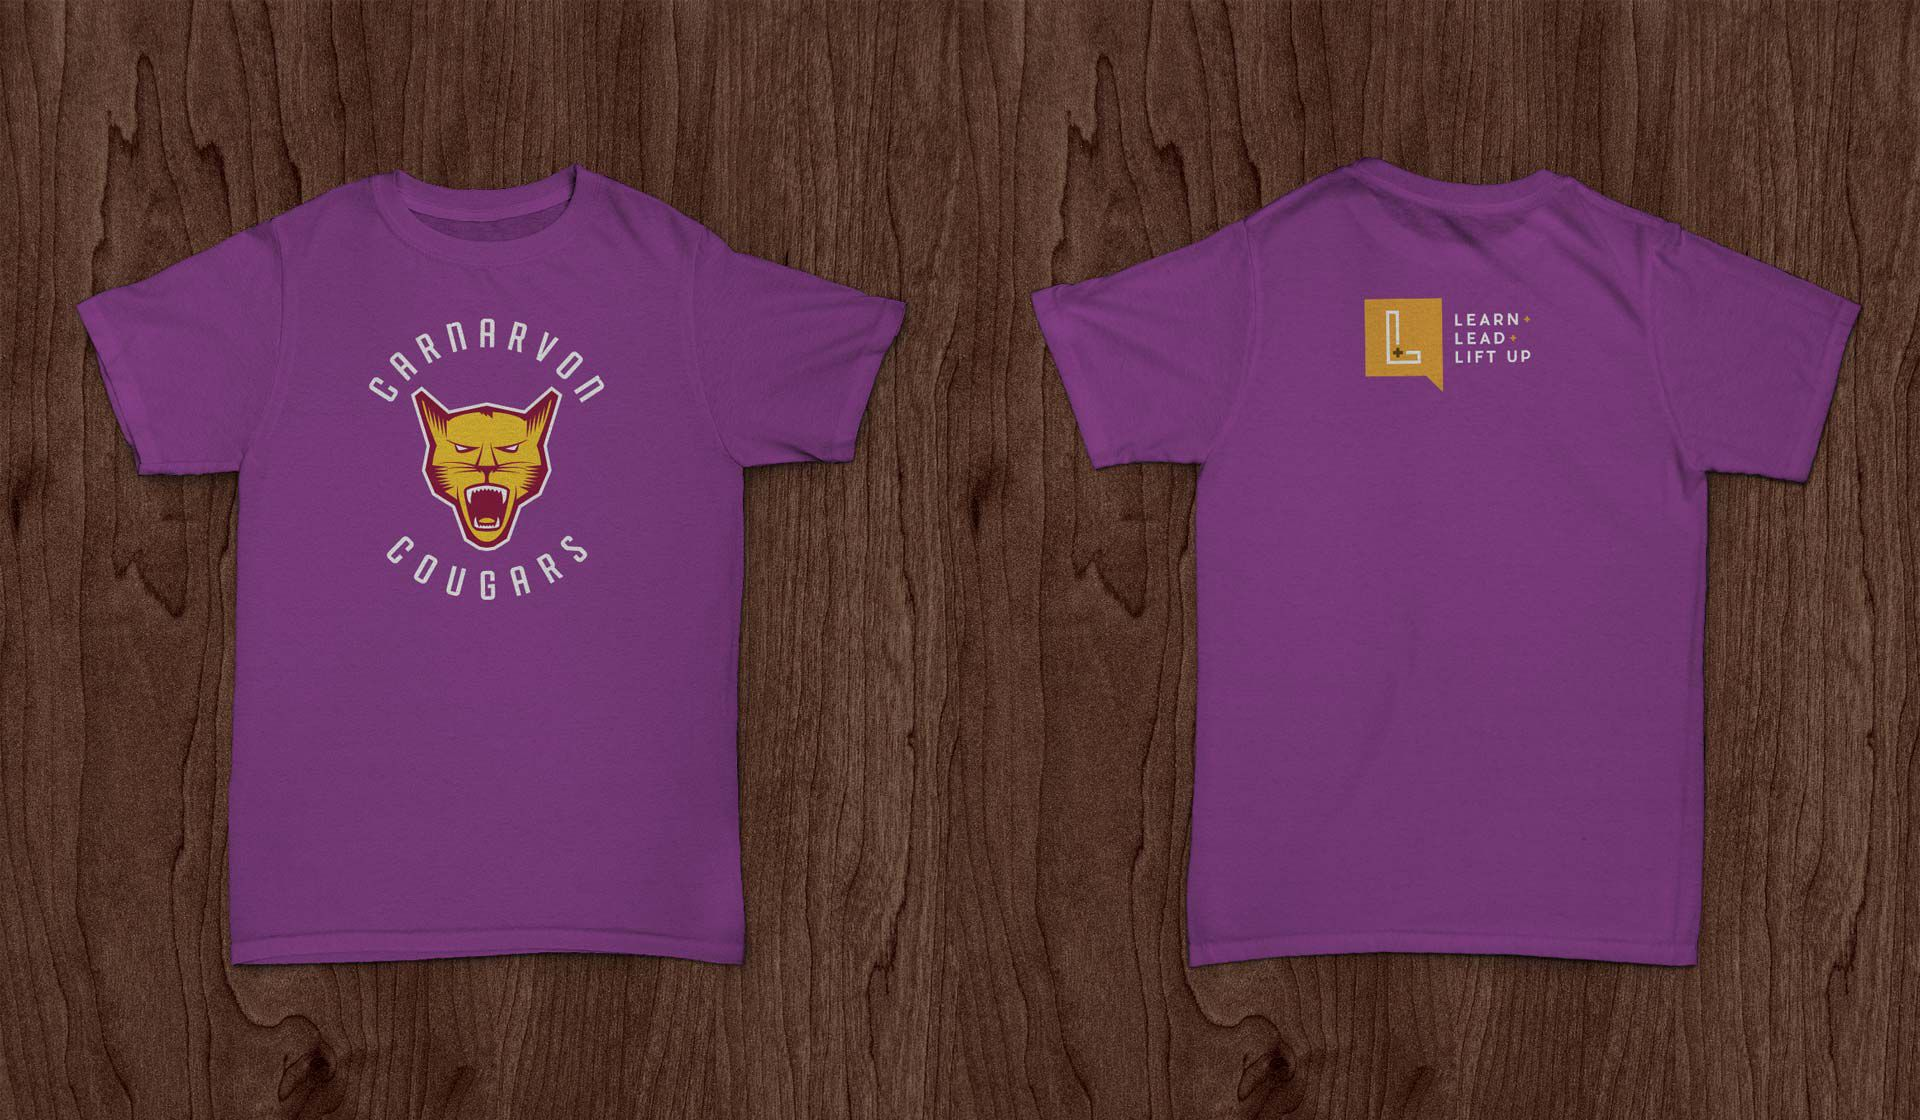 Front and back mockups of the soon-to-be-produced Carnarvon Cougars t-shirts.